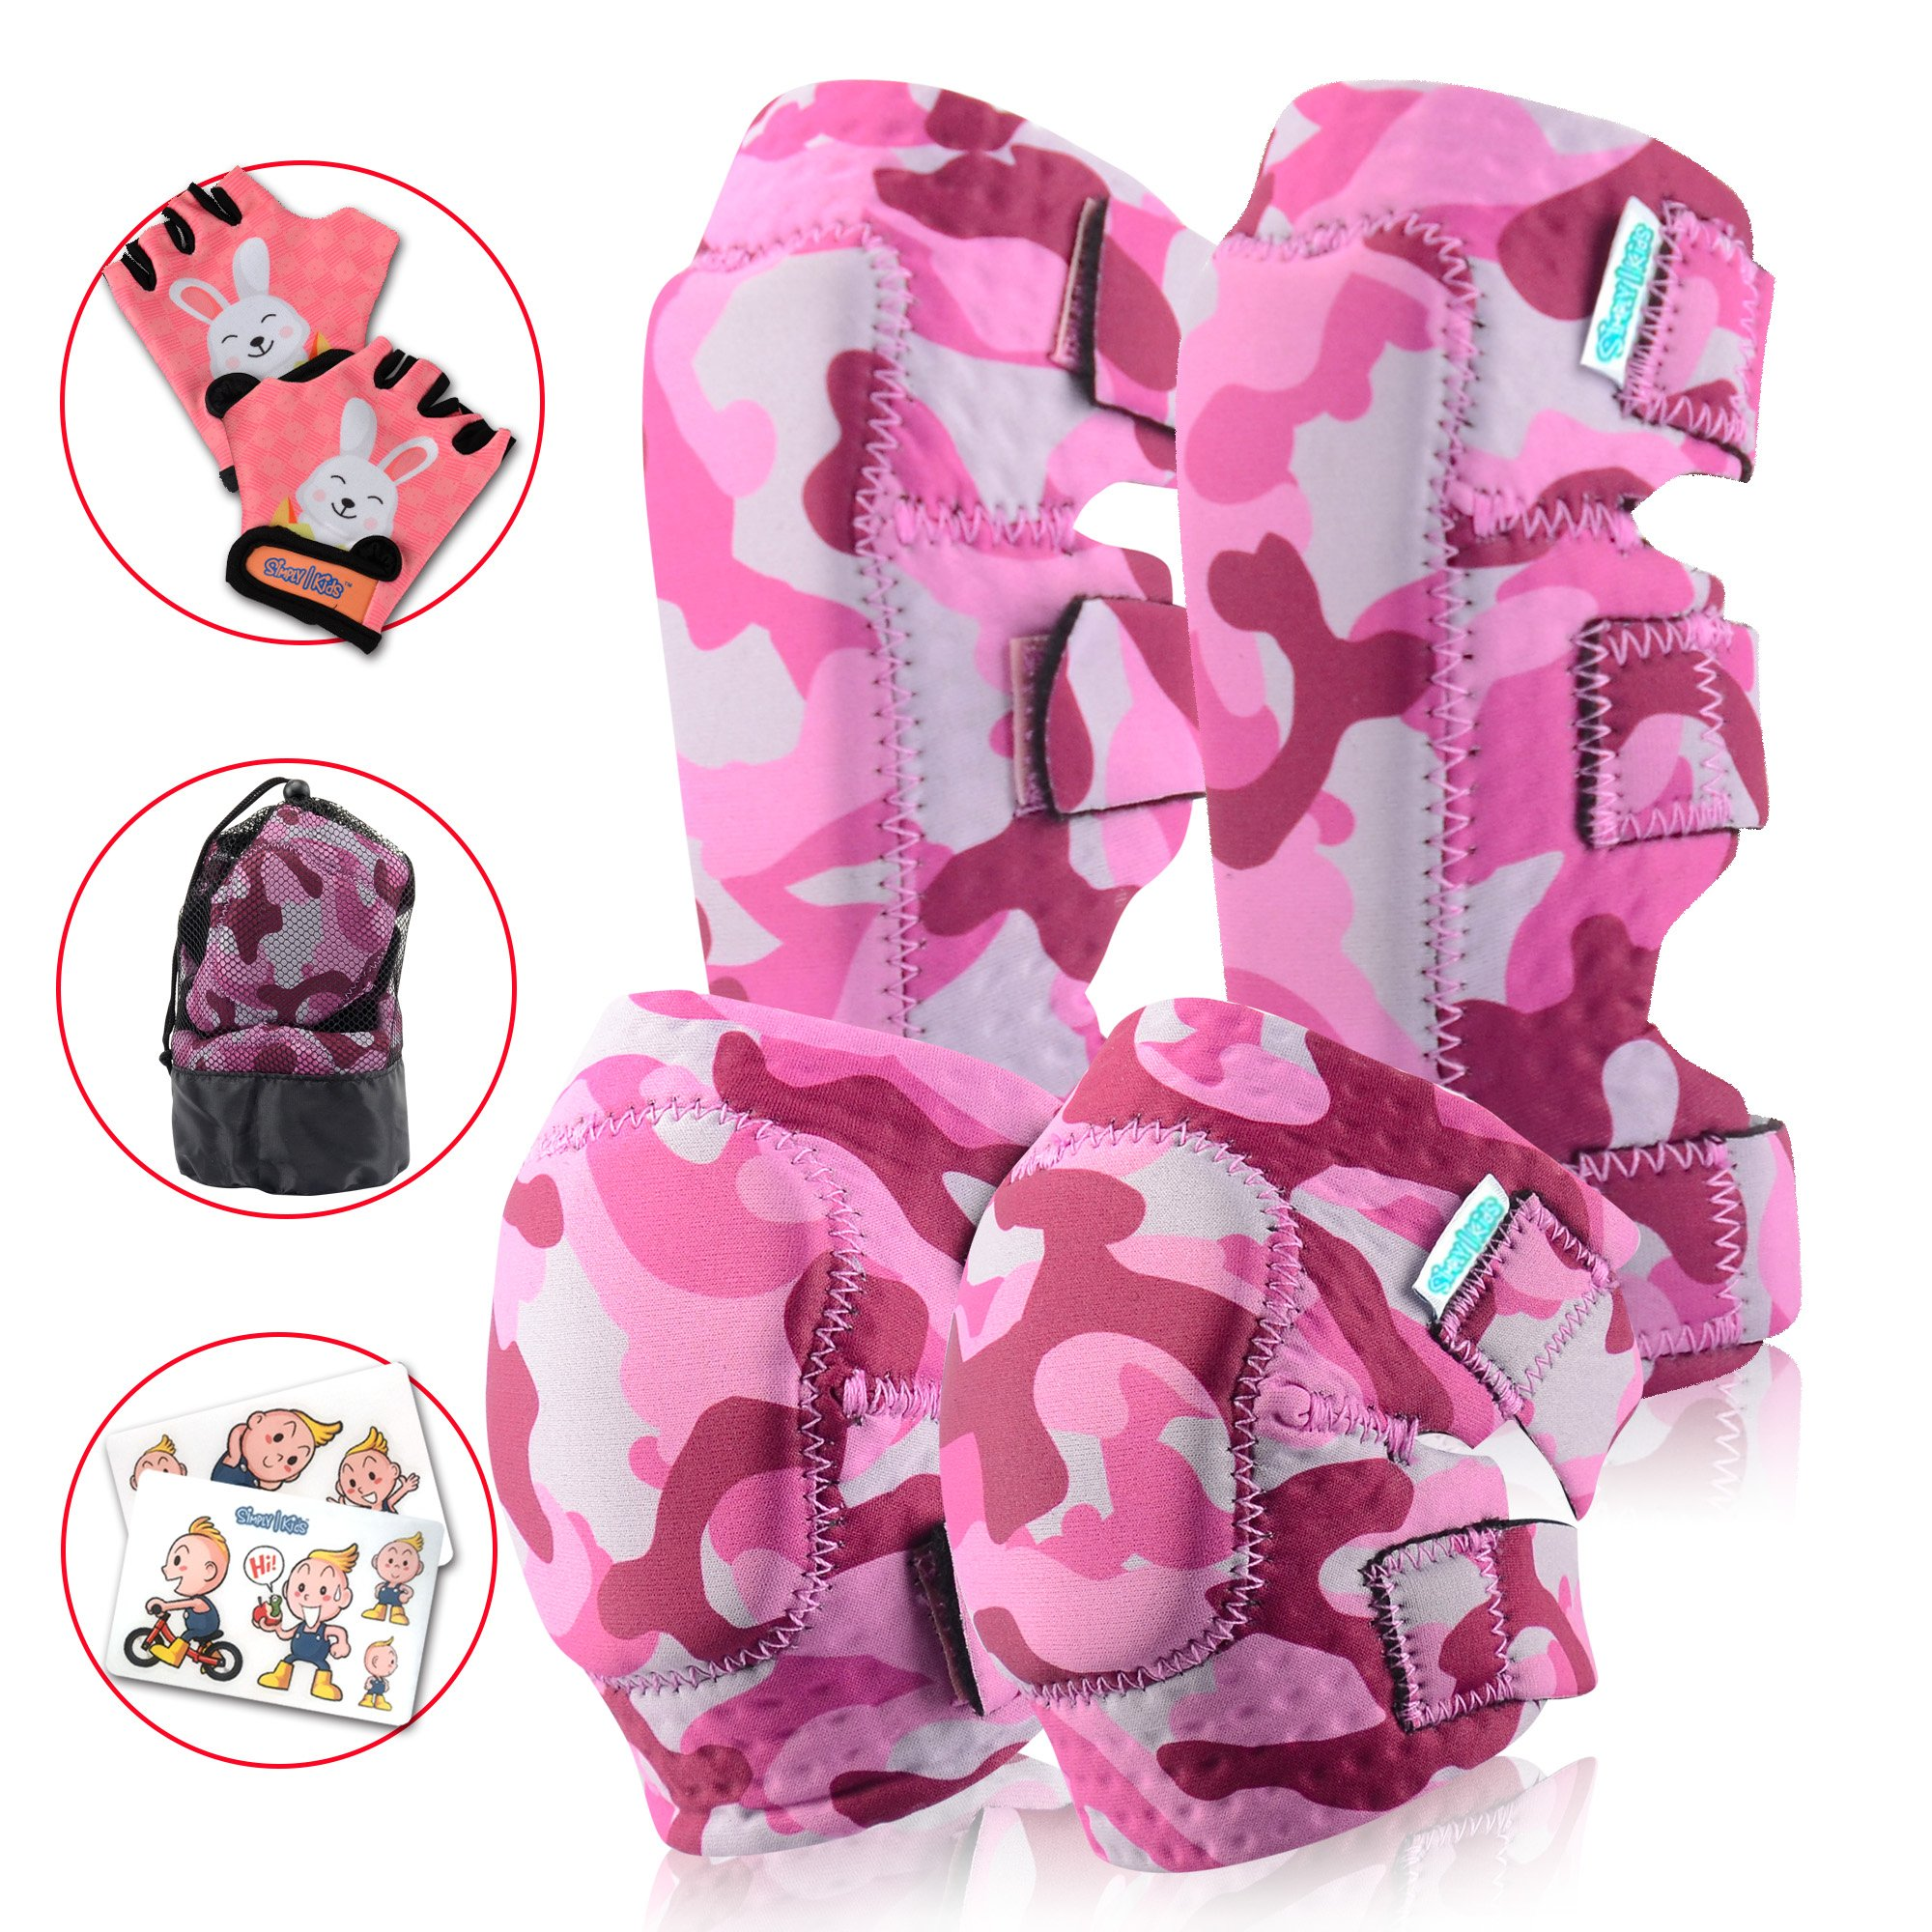 Innovative Soft Kids Knee And Elbow Pads Plus Bike Gloves | Toddler Protective Gear Set | Comfortable Breathable Safe | Roller-Skate, Skateboard, Rollerblade For Children Boy And Girl (Baby Pink Camo)